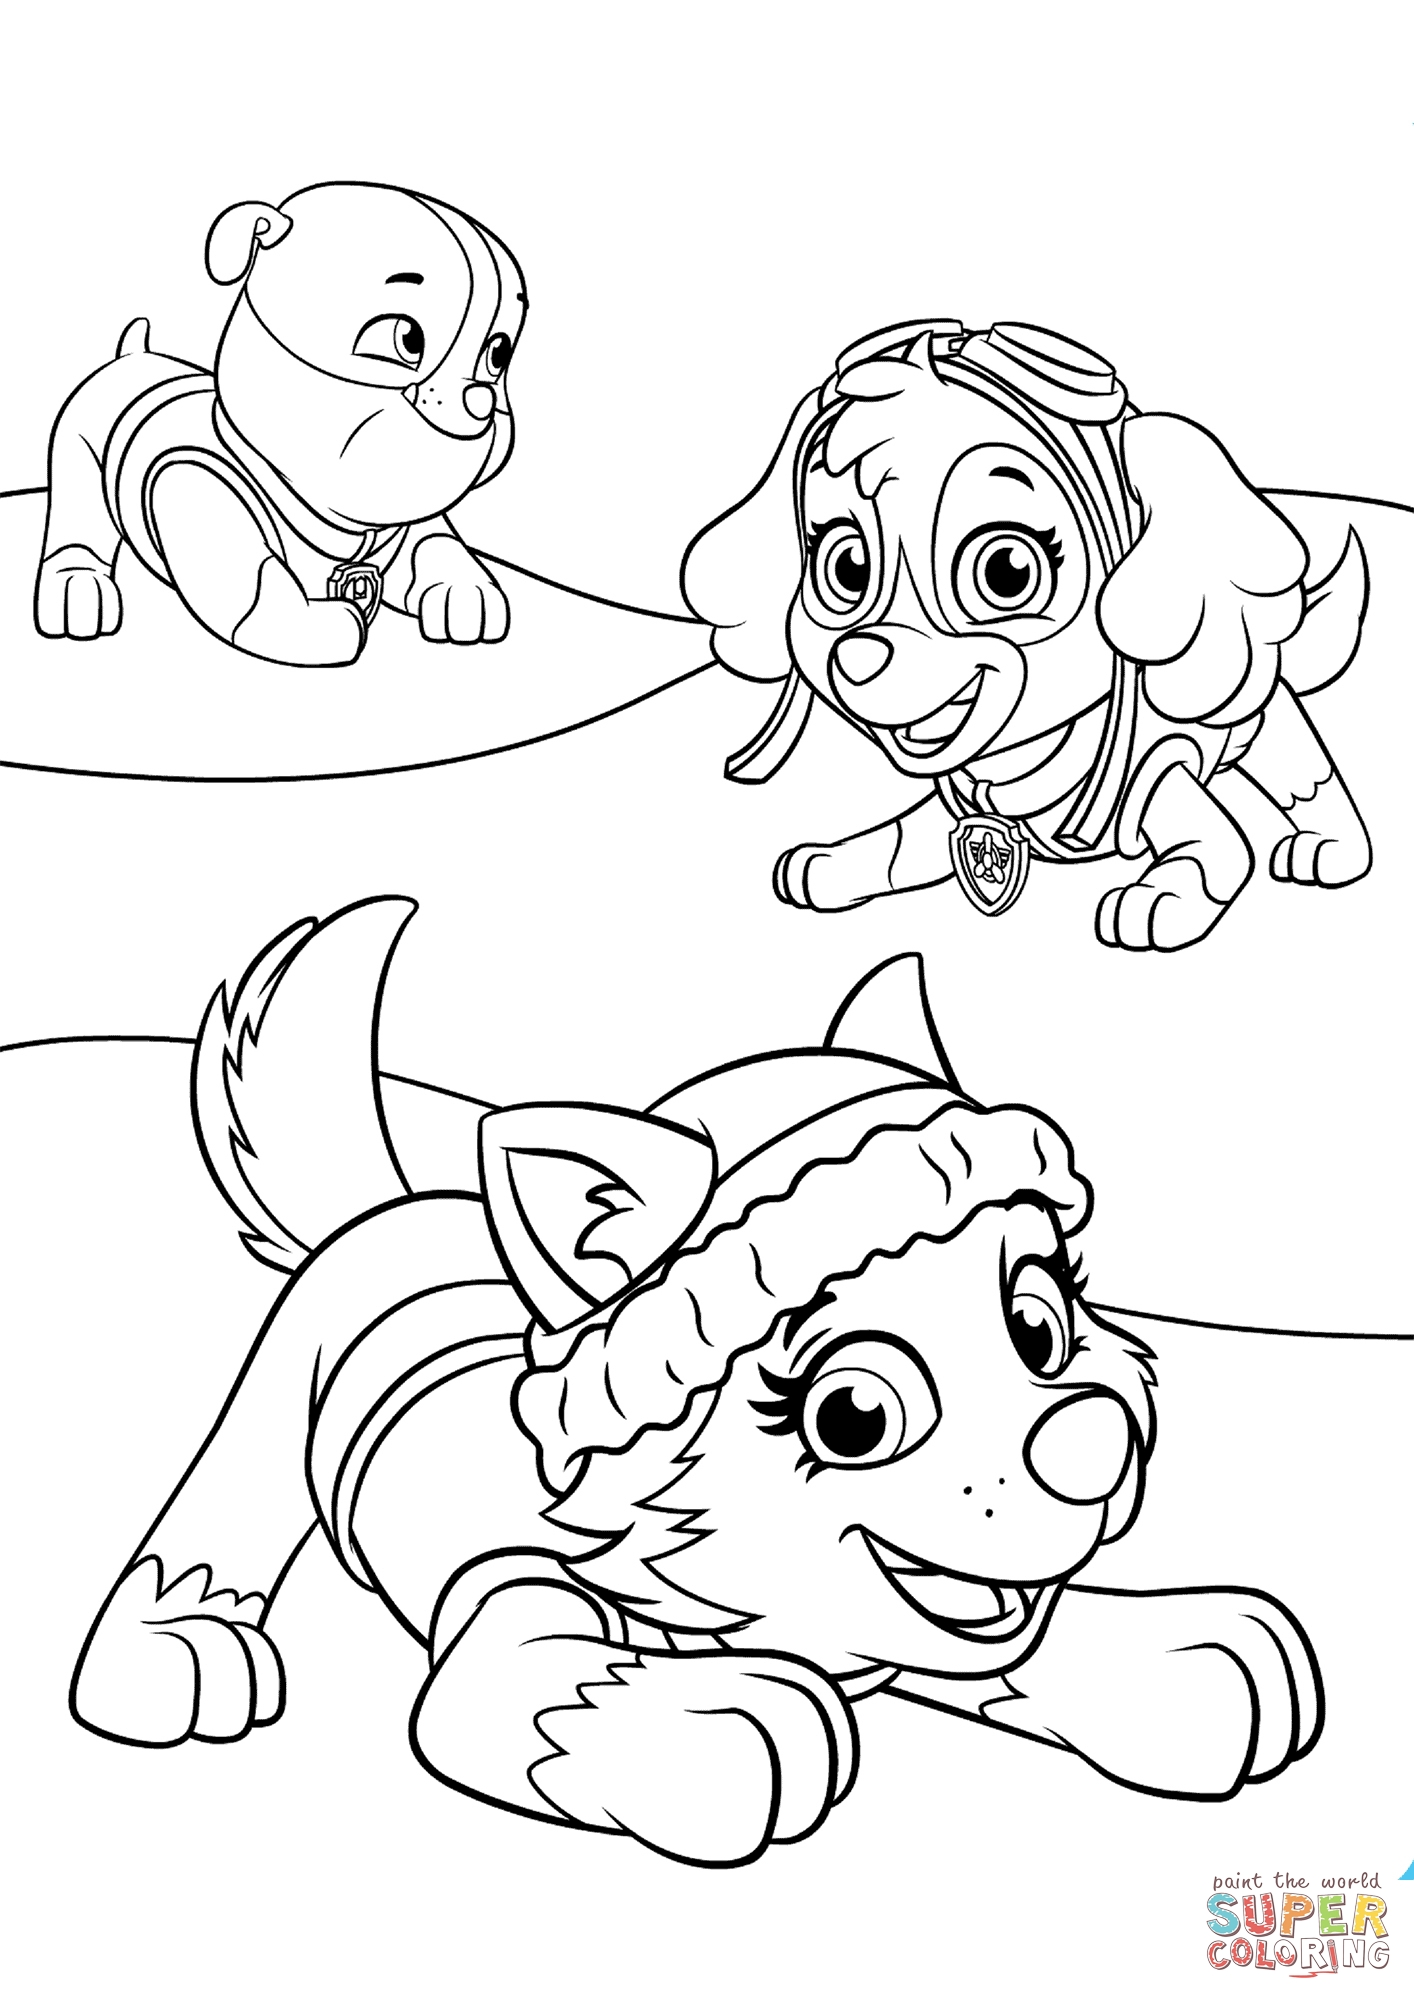 skye coloring pages - everest plays with skye and rubble